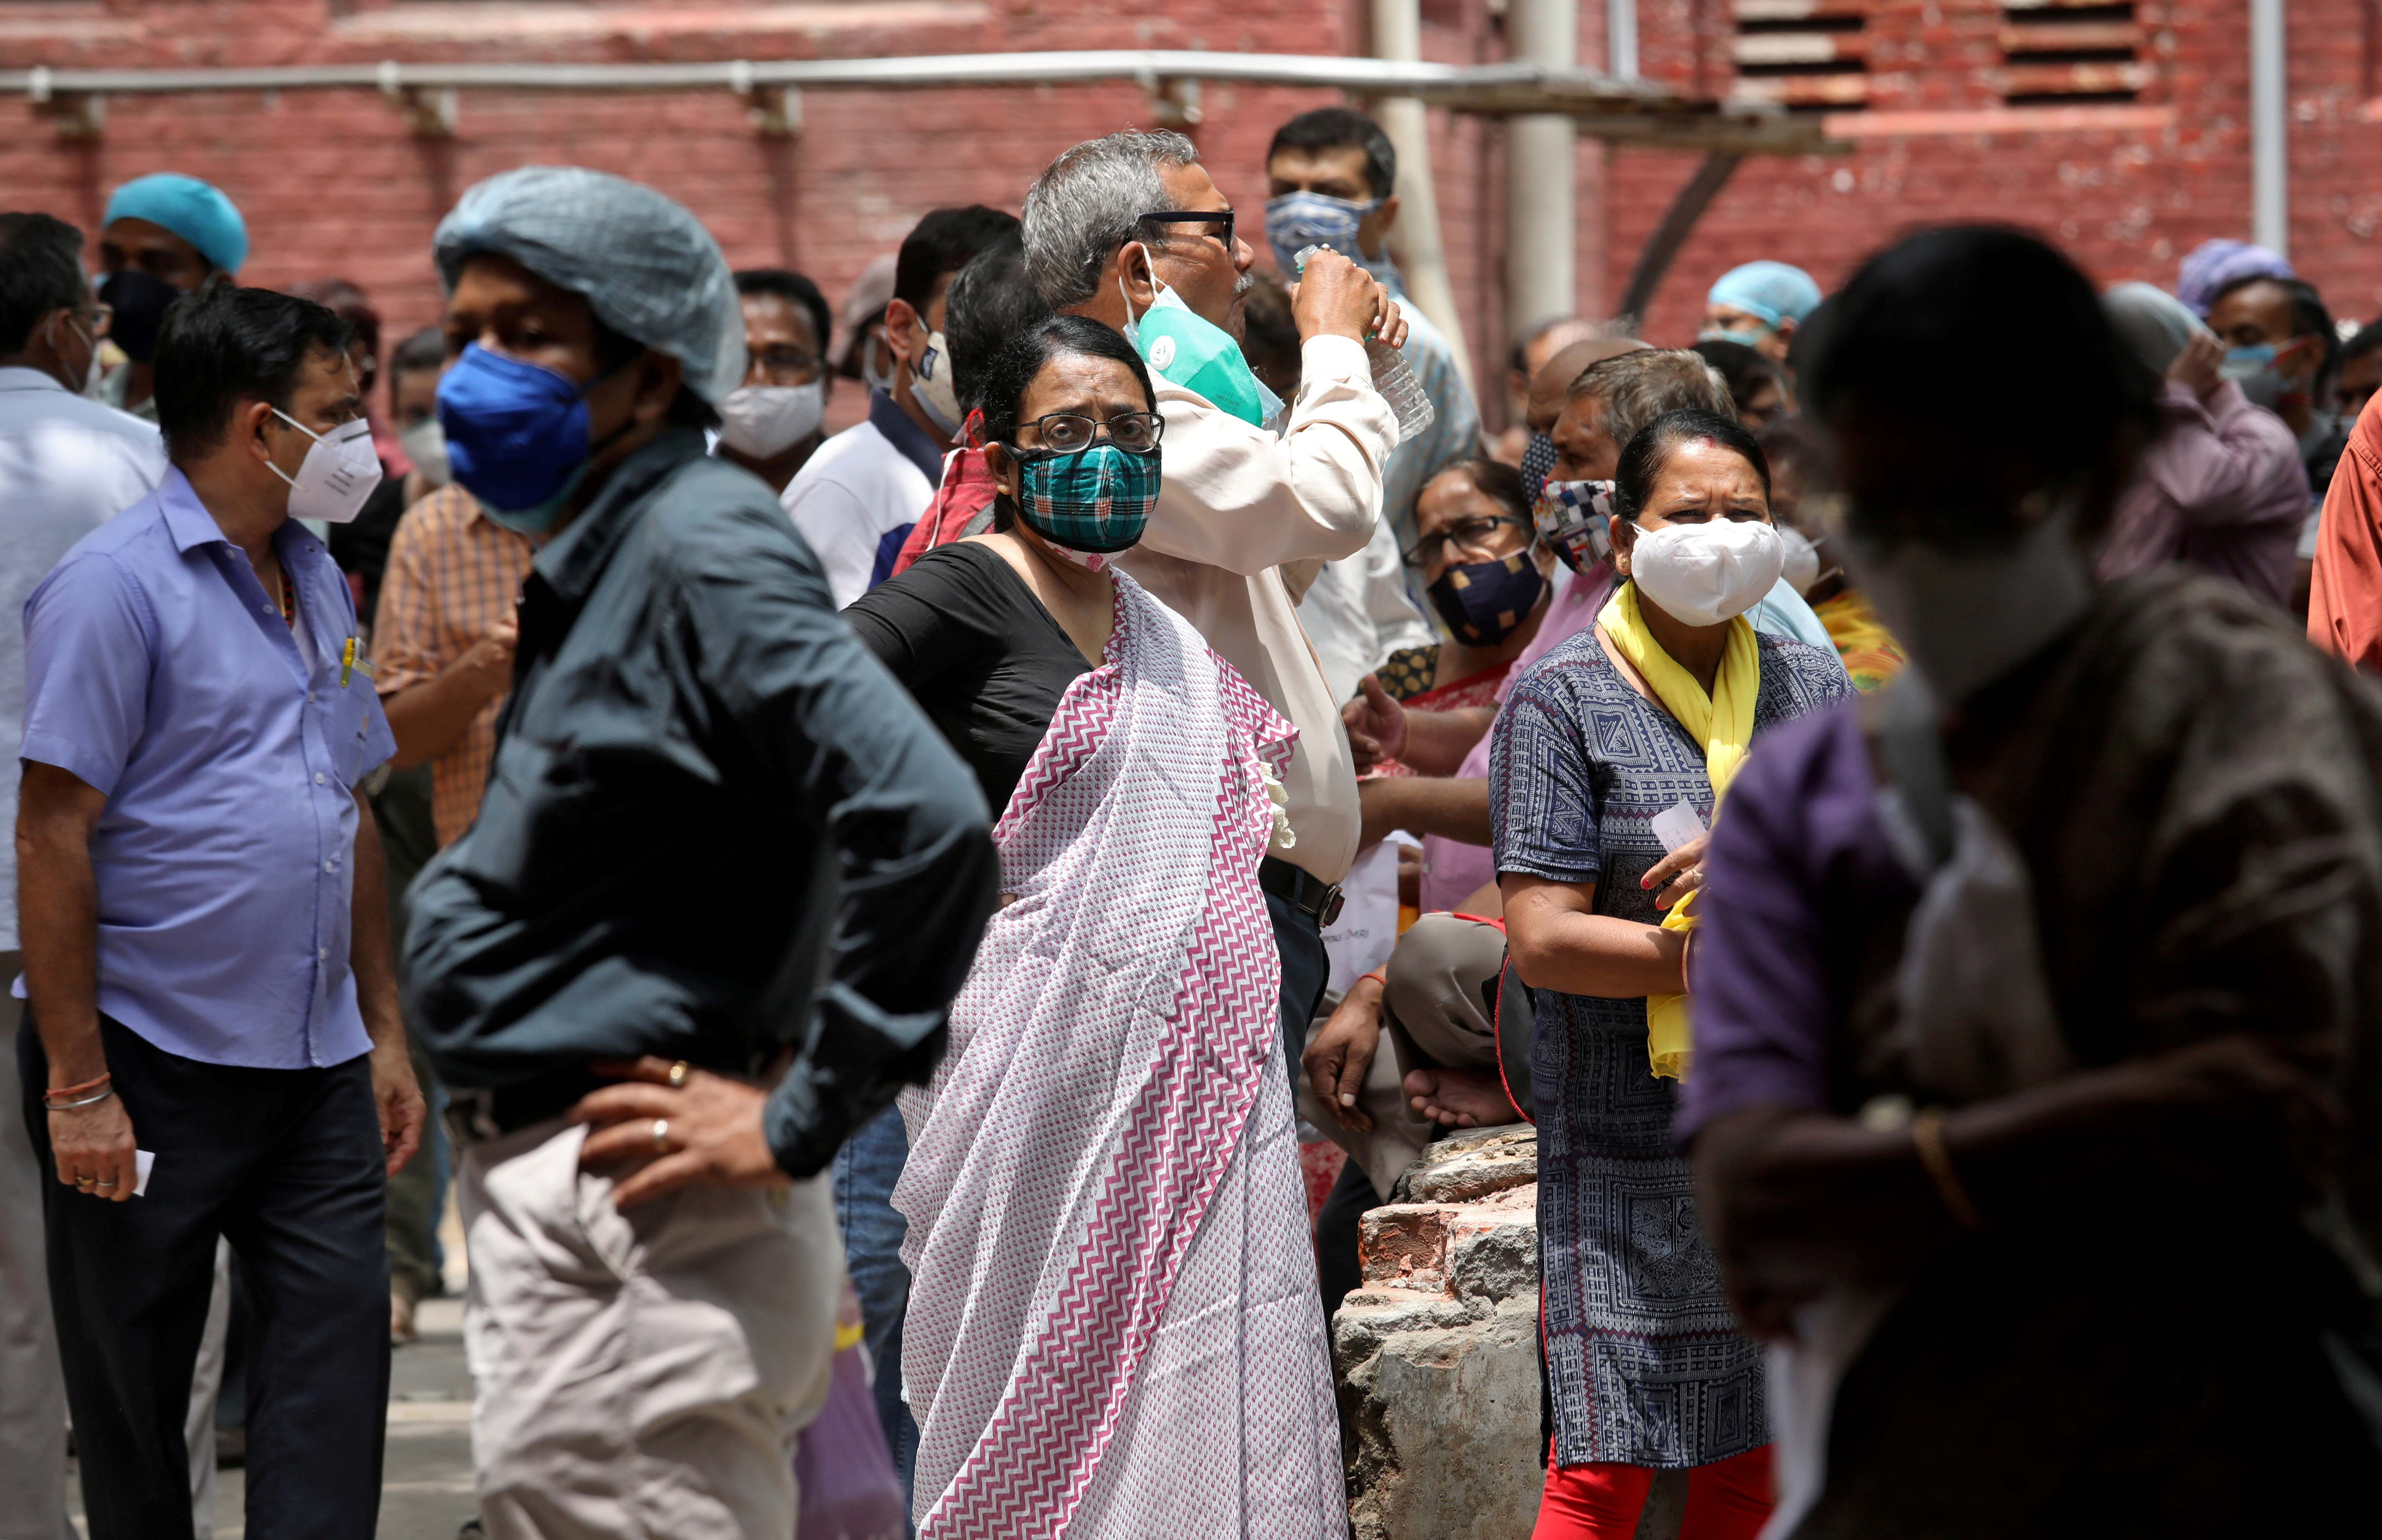 People wearing protective face masks wait to receive their second dose of COVISHIELD, a coronavirus disease (COVID-19) vaccine manufactured by Serum Institute of India, outside a vaccination centre in Kolkata, India, May 12, 2021. REUTERS/Rupak De Chowdhuri